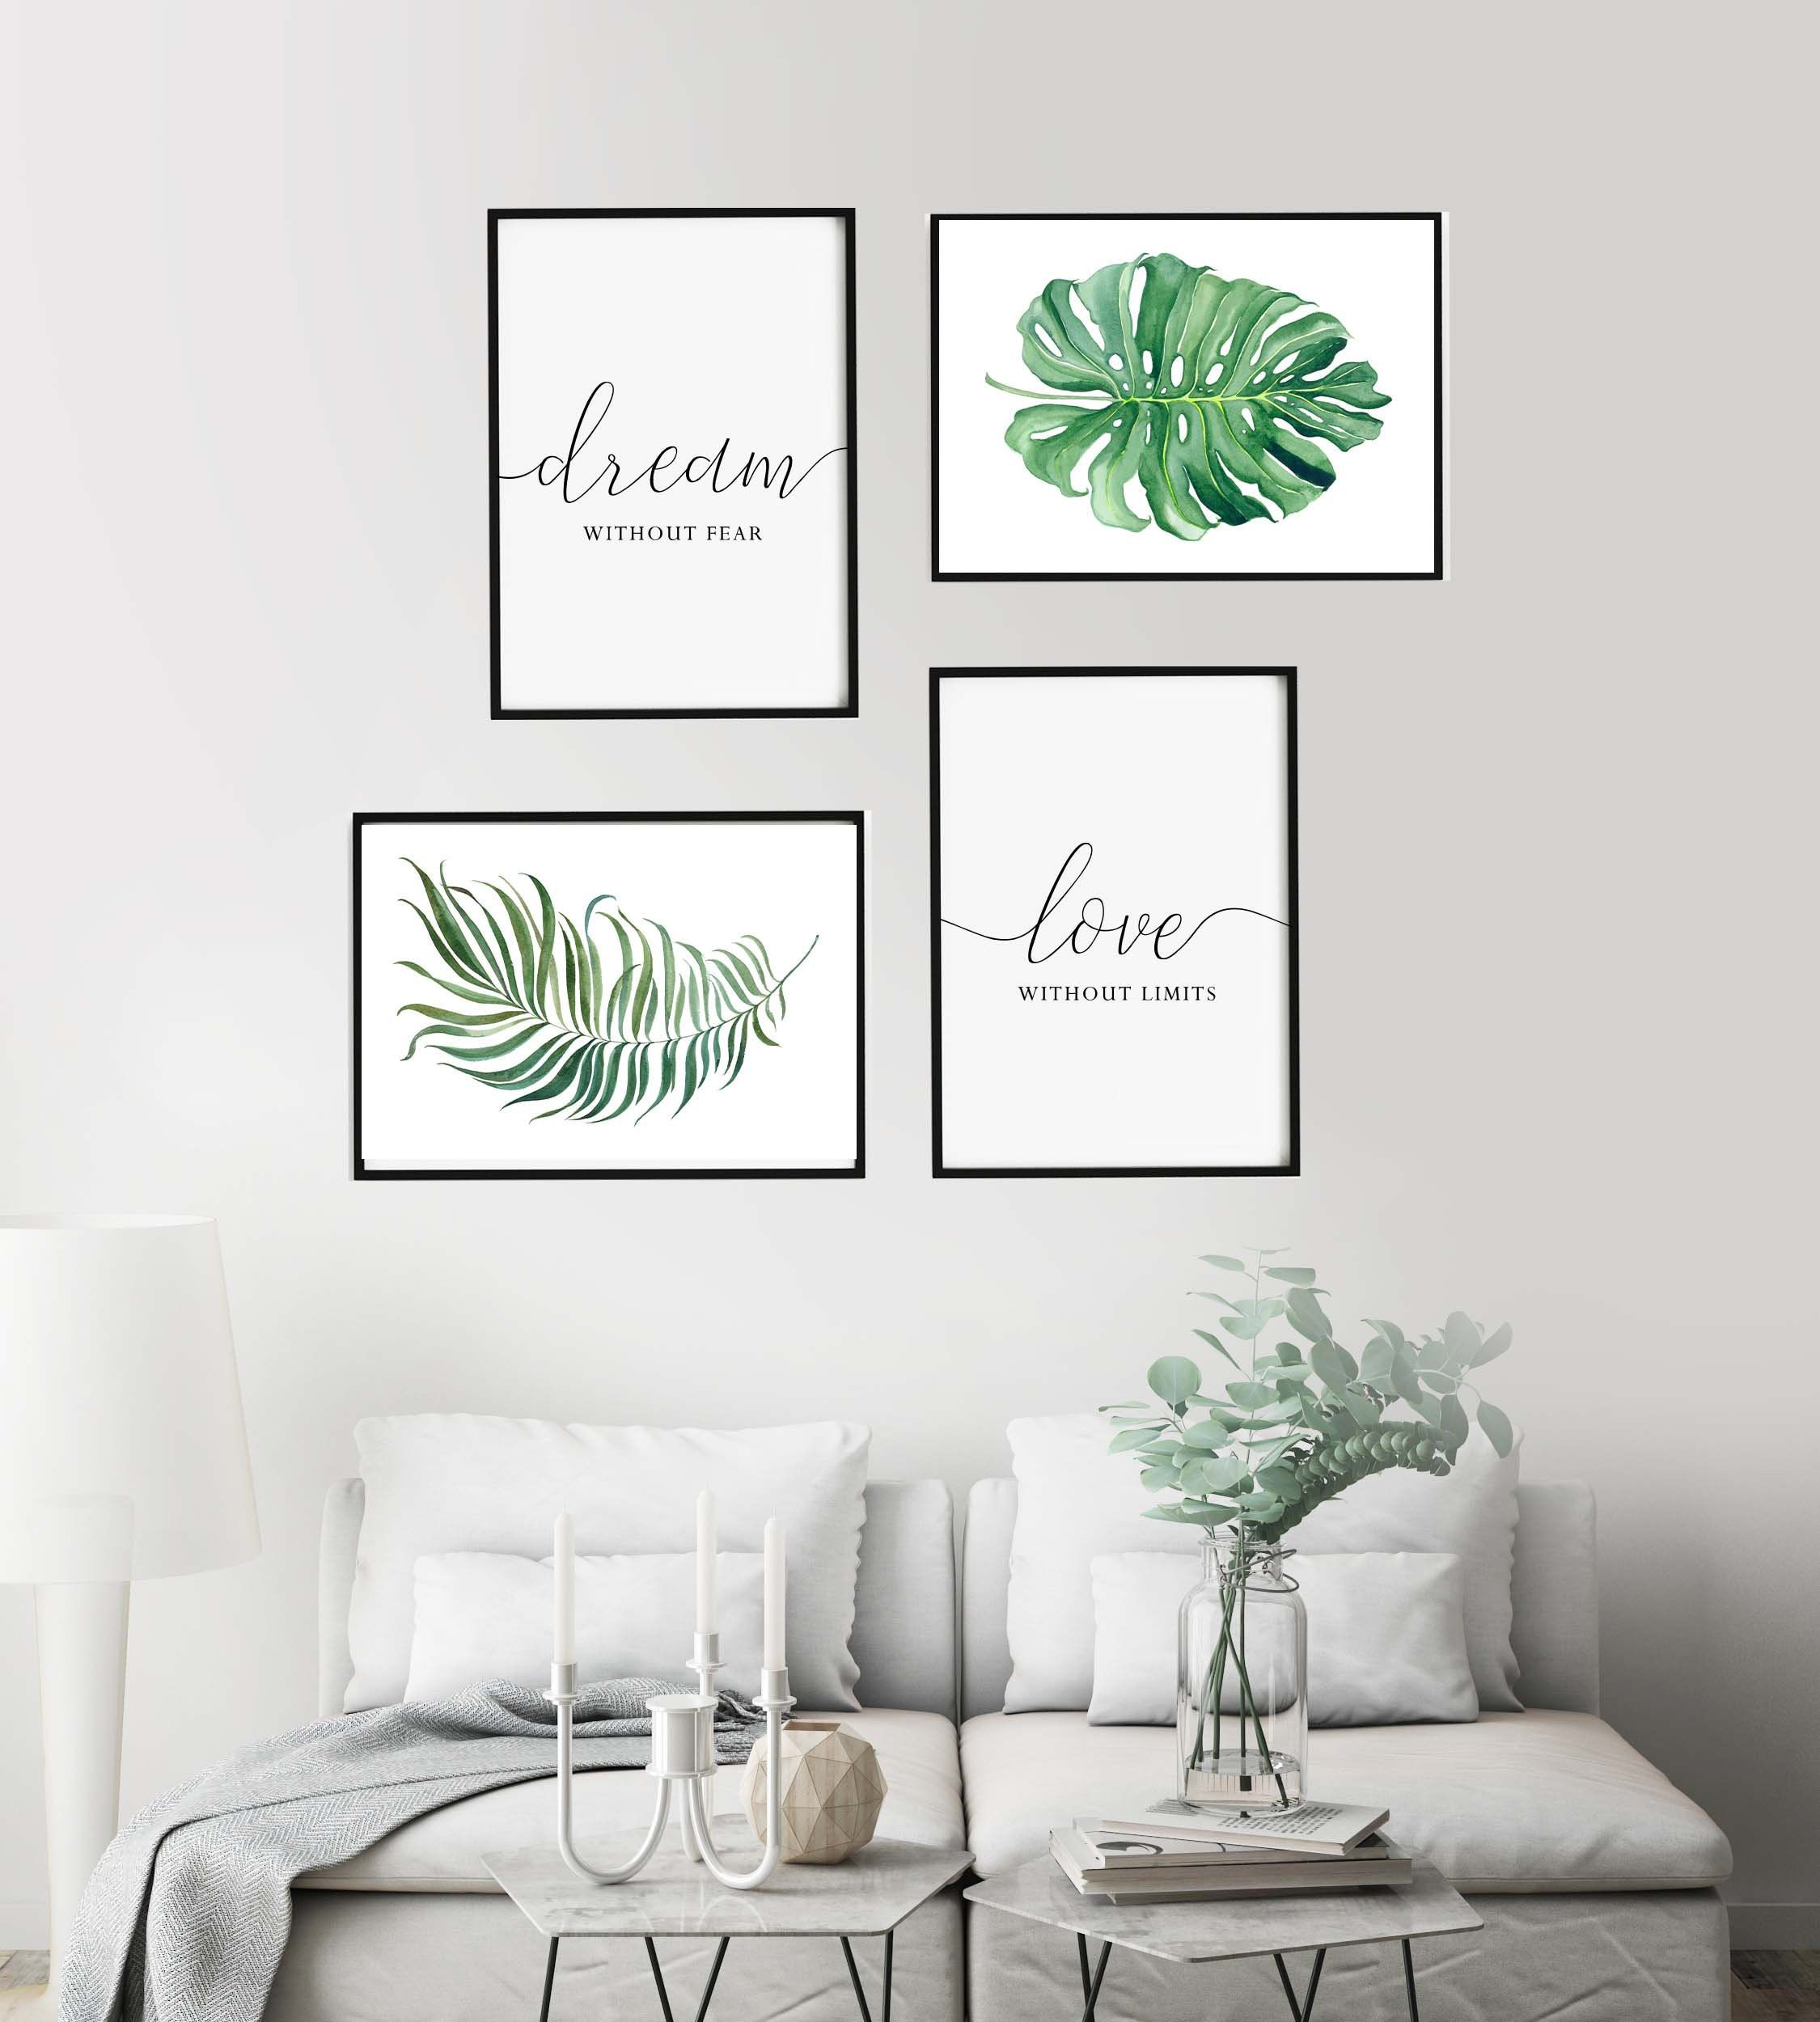 Set Of 4 Printsdream Without Fear Love Without Limitsliving Etsy Wall Decor Living Room Room Wall Decor Wall Printables Wall photos for living room